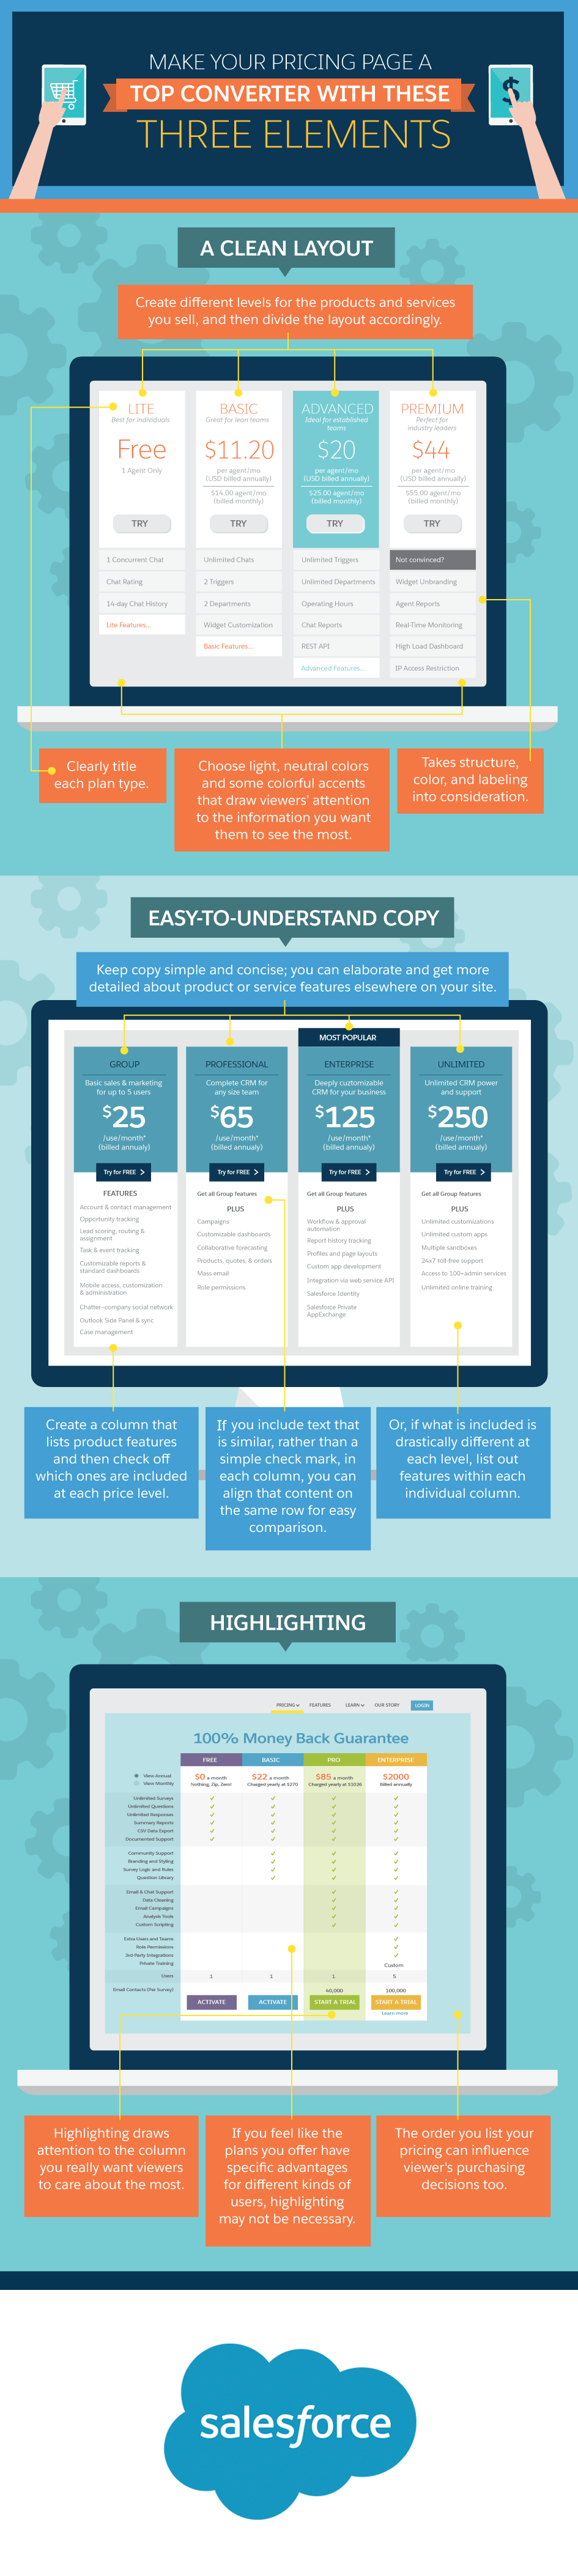 Make Your Pricing Page A Top Converter With These Three Elements #Infographic